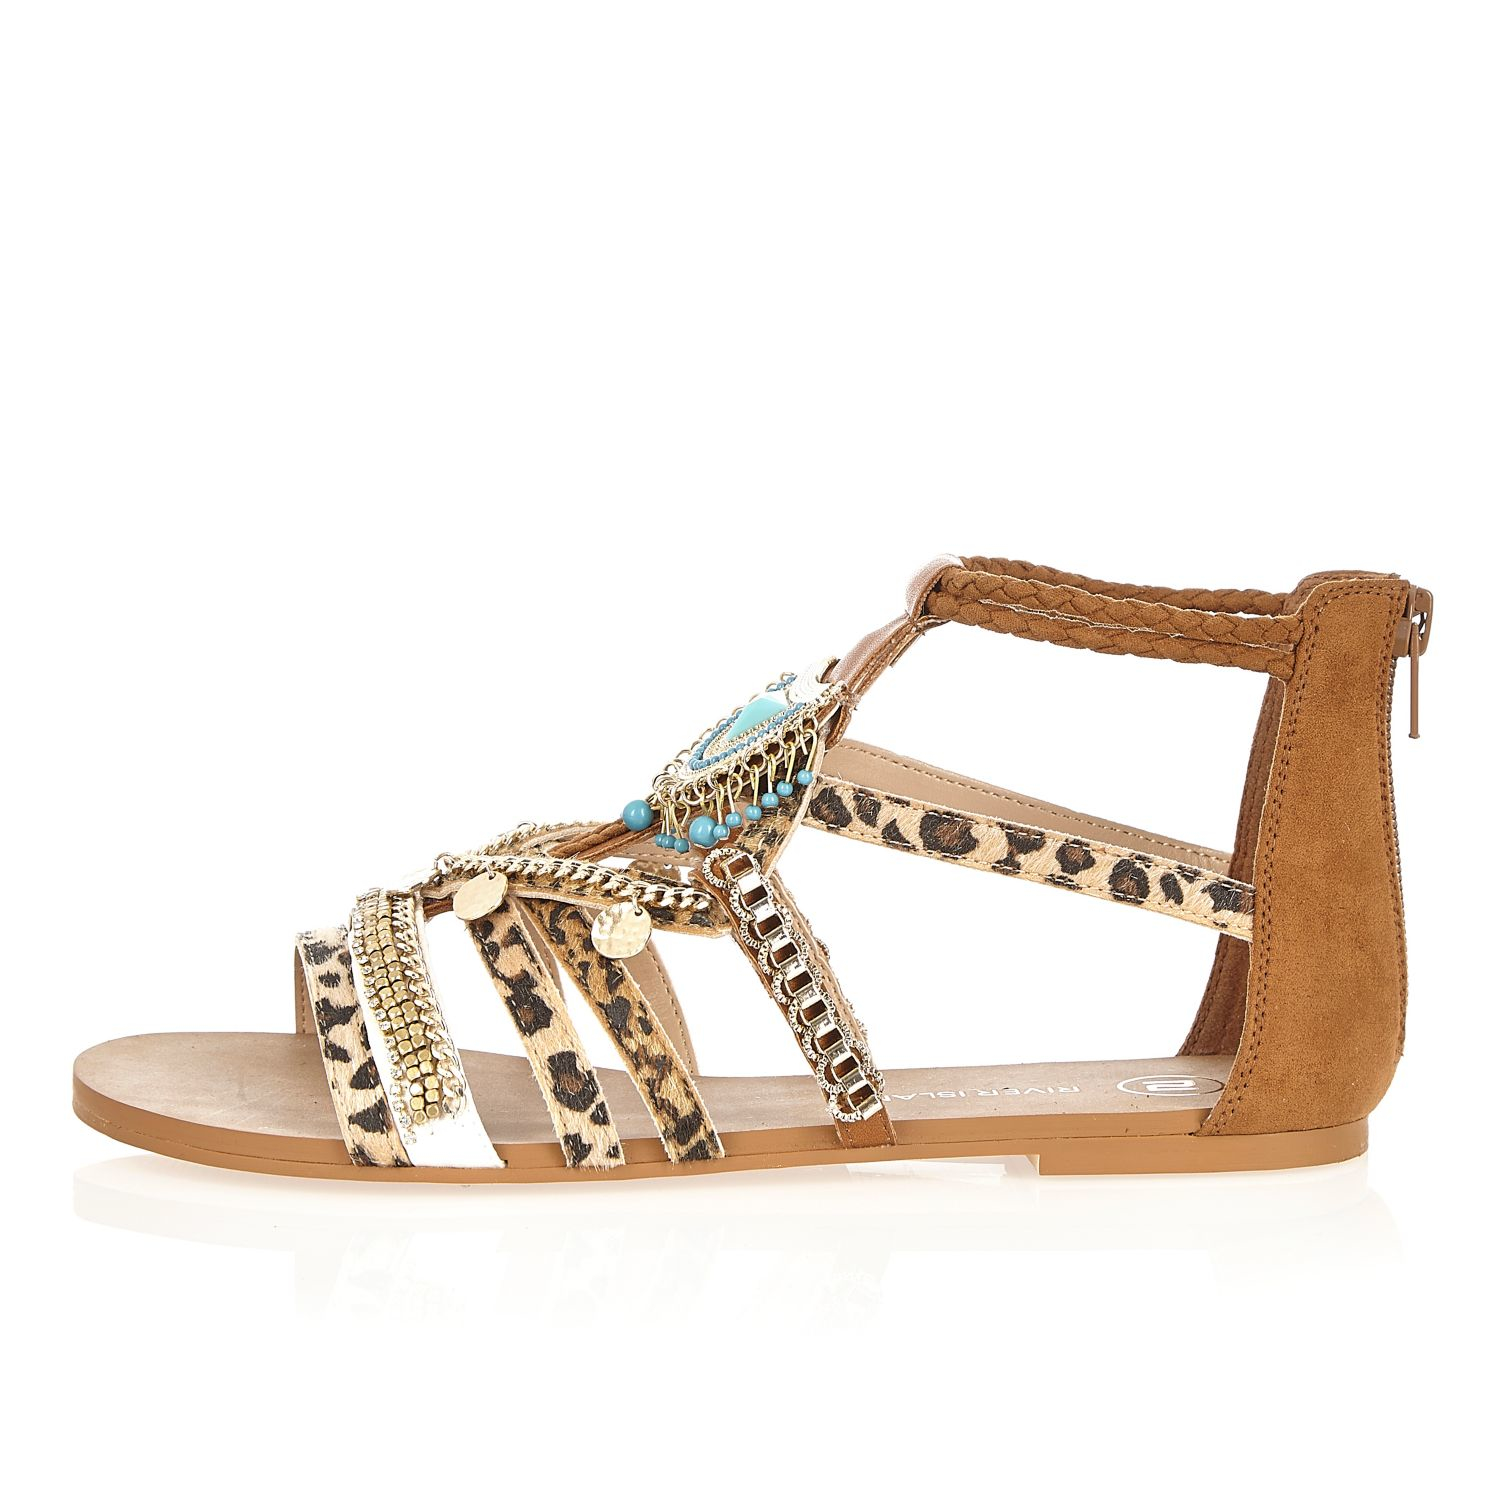 River Island Shoes And Sandals